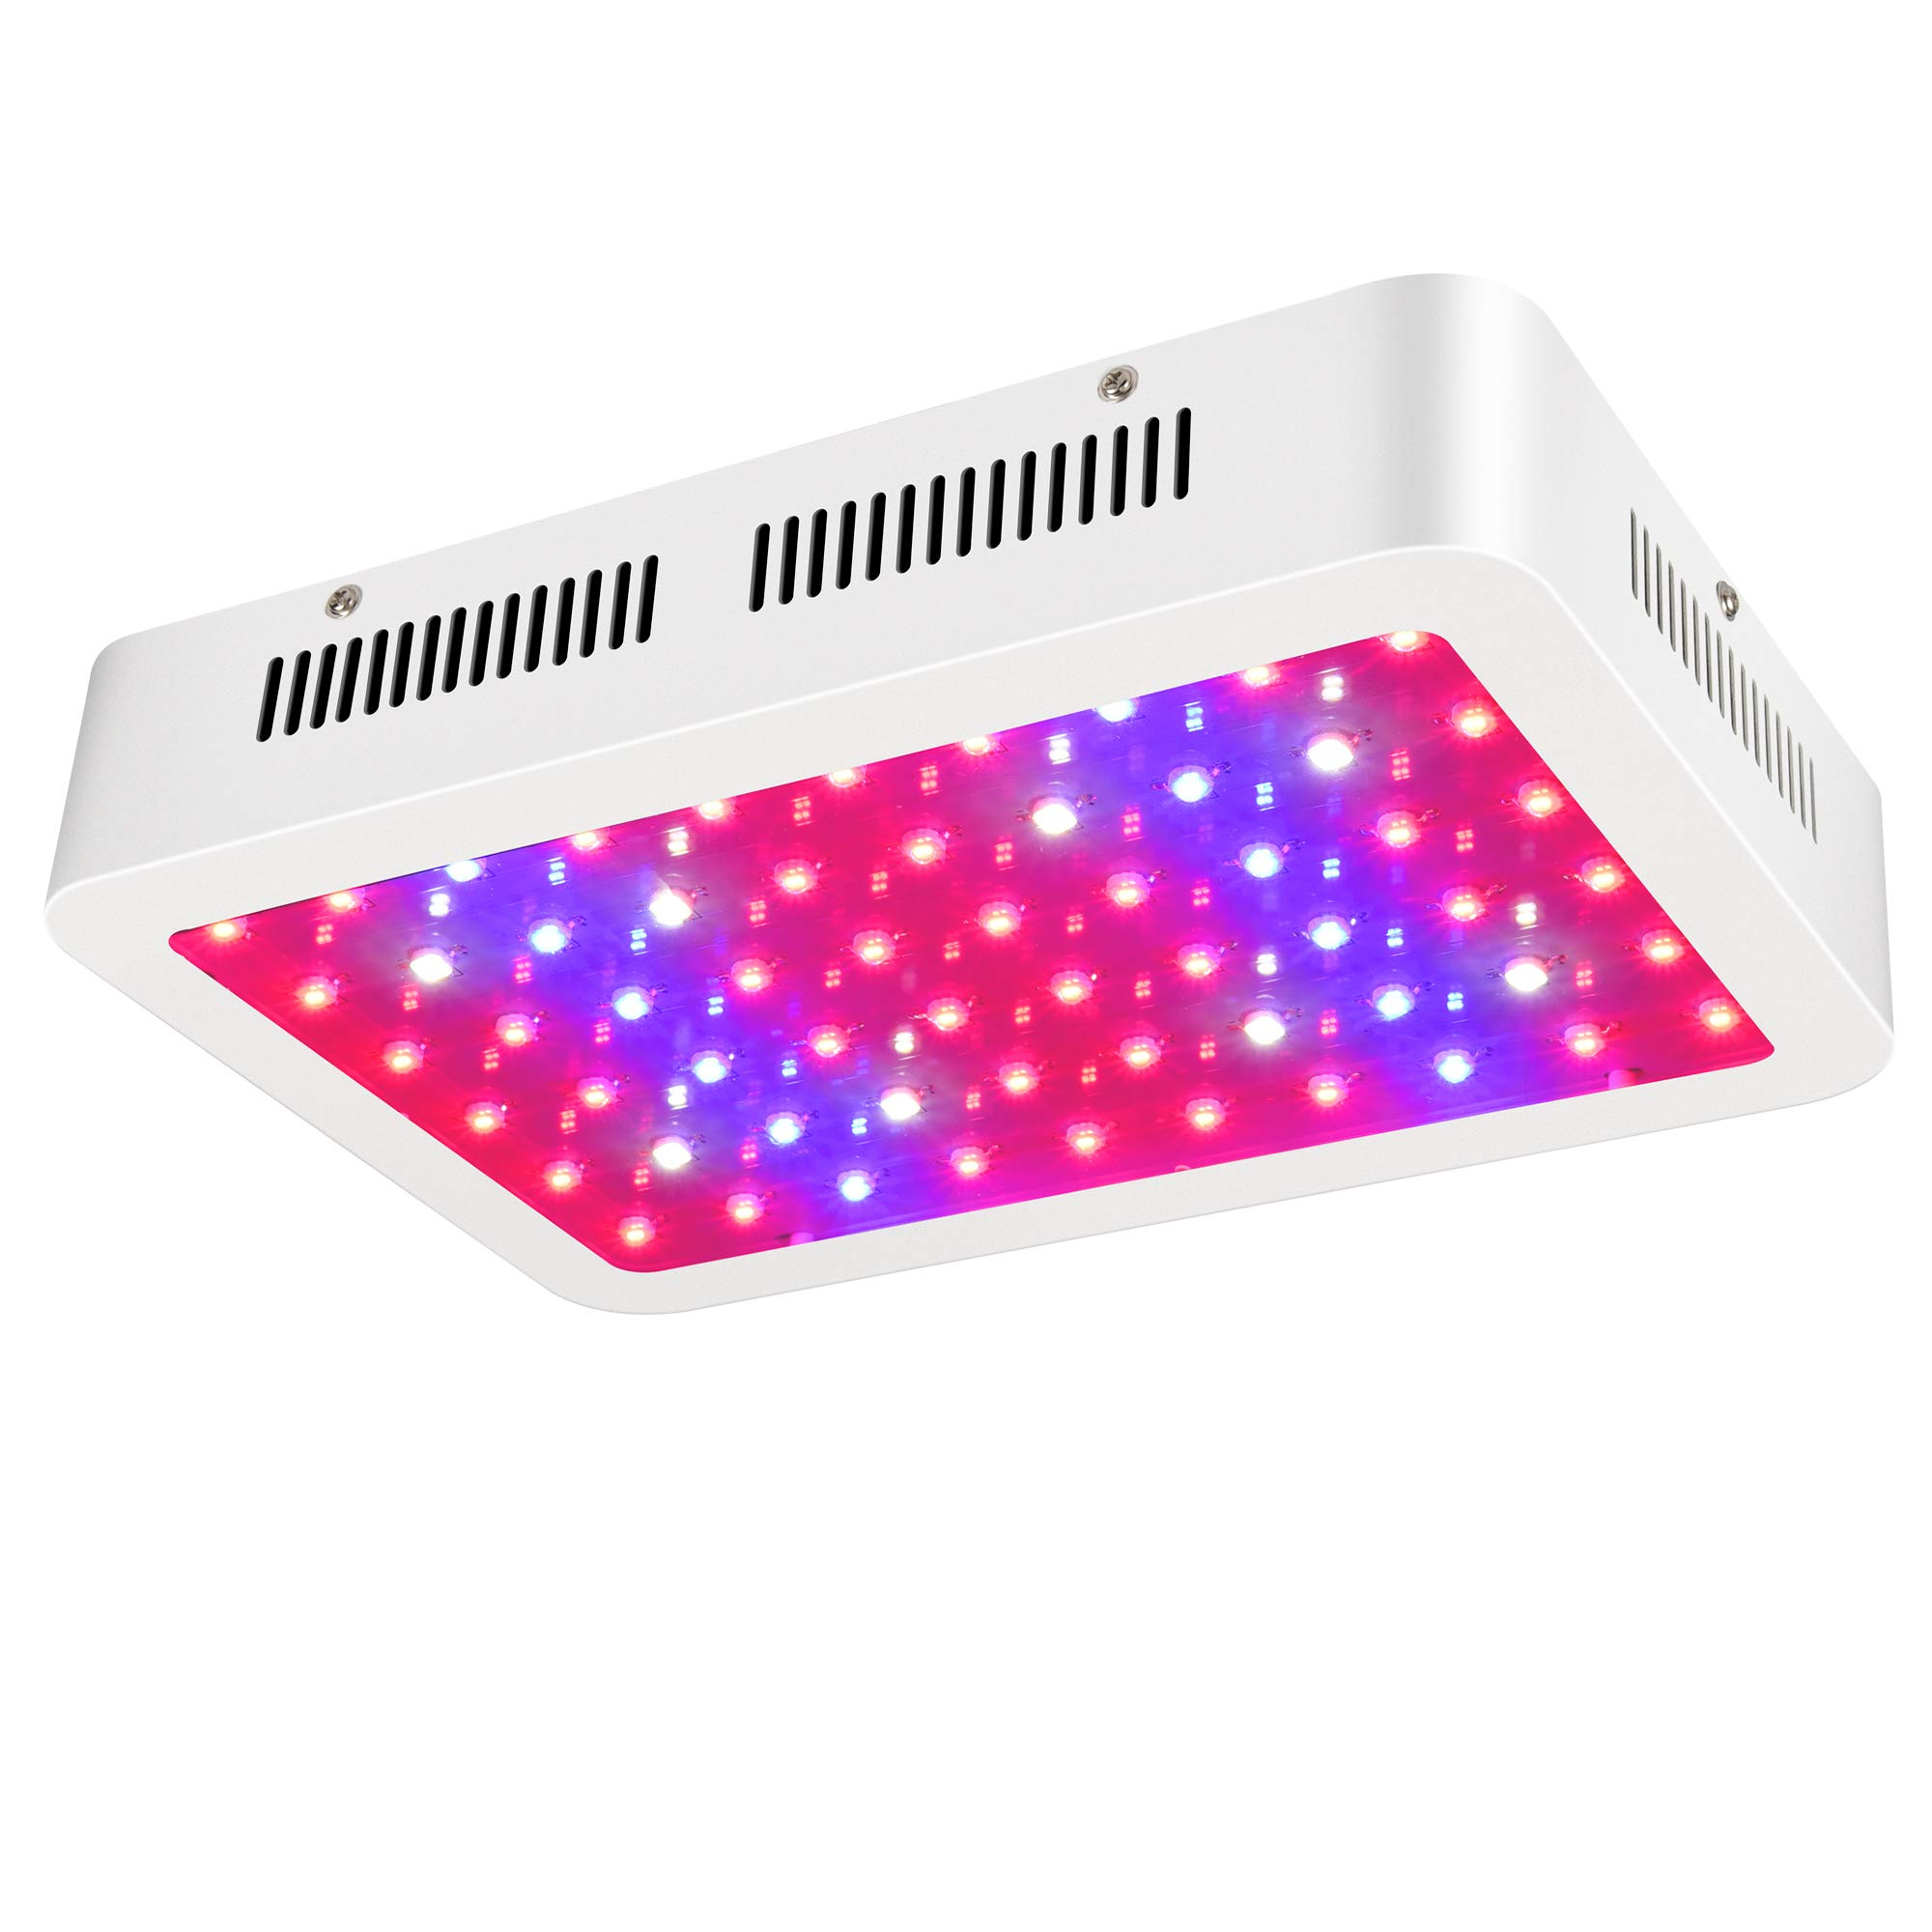 ZXMEAN 600W LED Plant Grow Light Dual Chips Full Spectrum with Adjustable Rope with UV and IR for Indoor Plants Veg and Flower,Input 85V to 265V